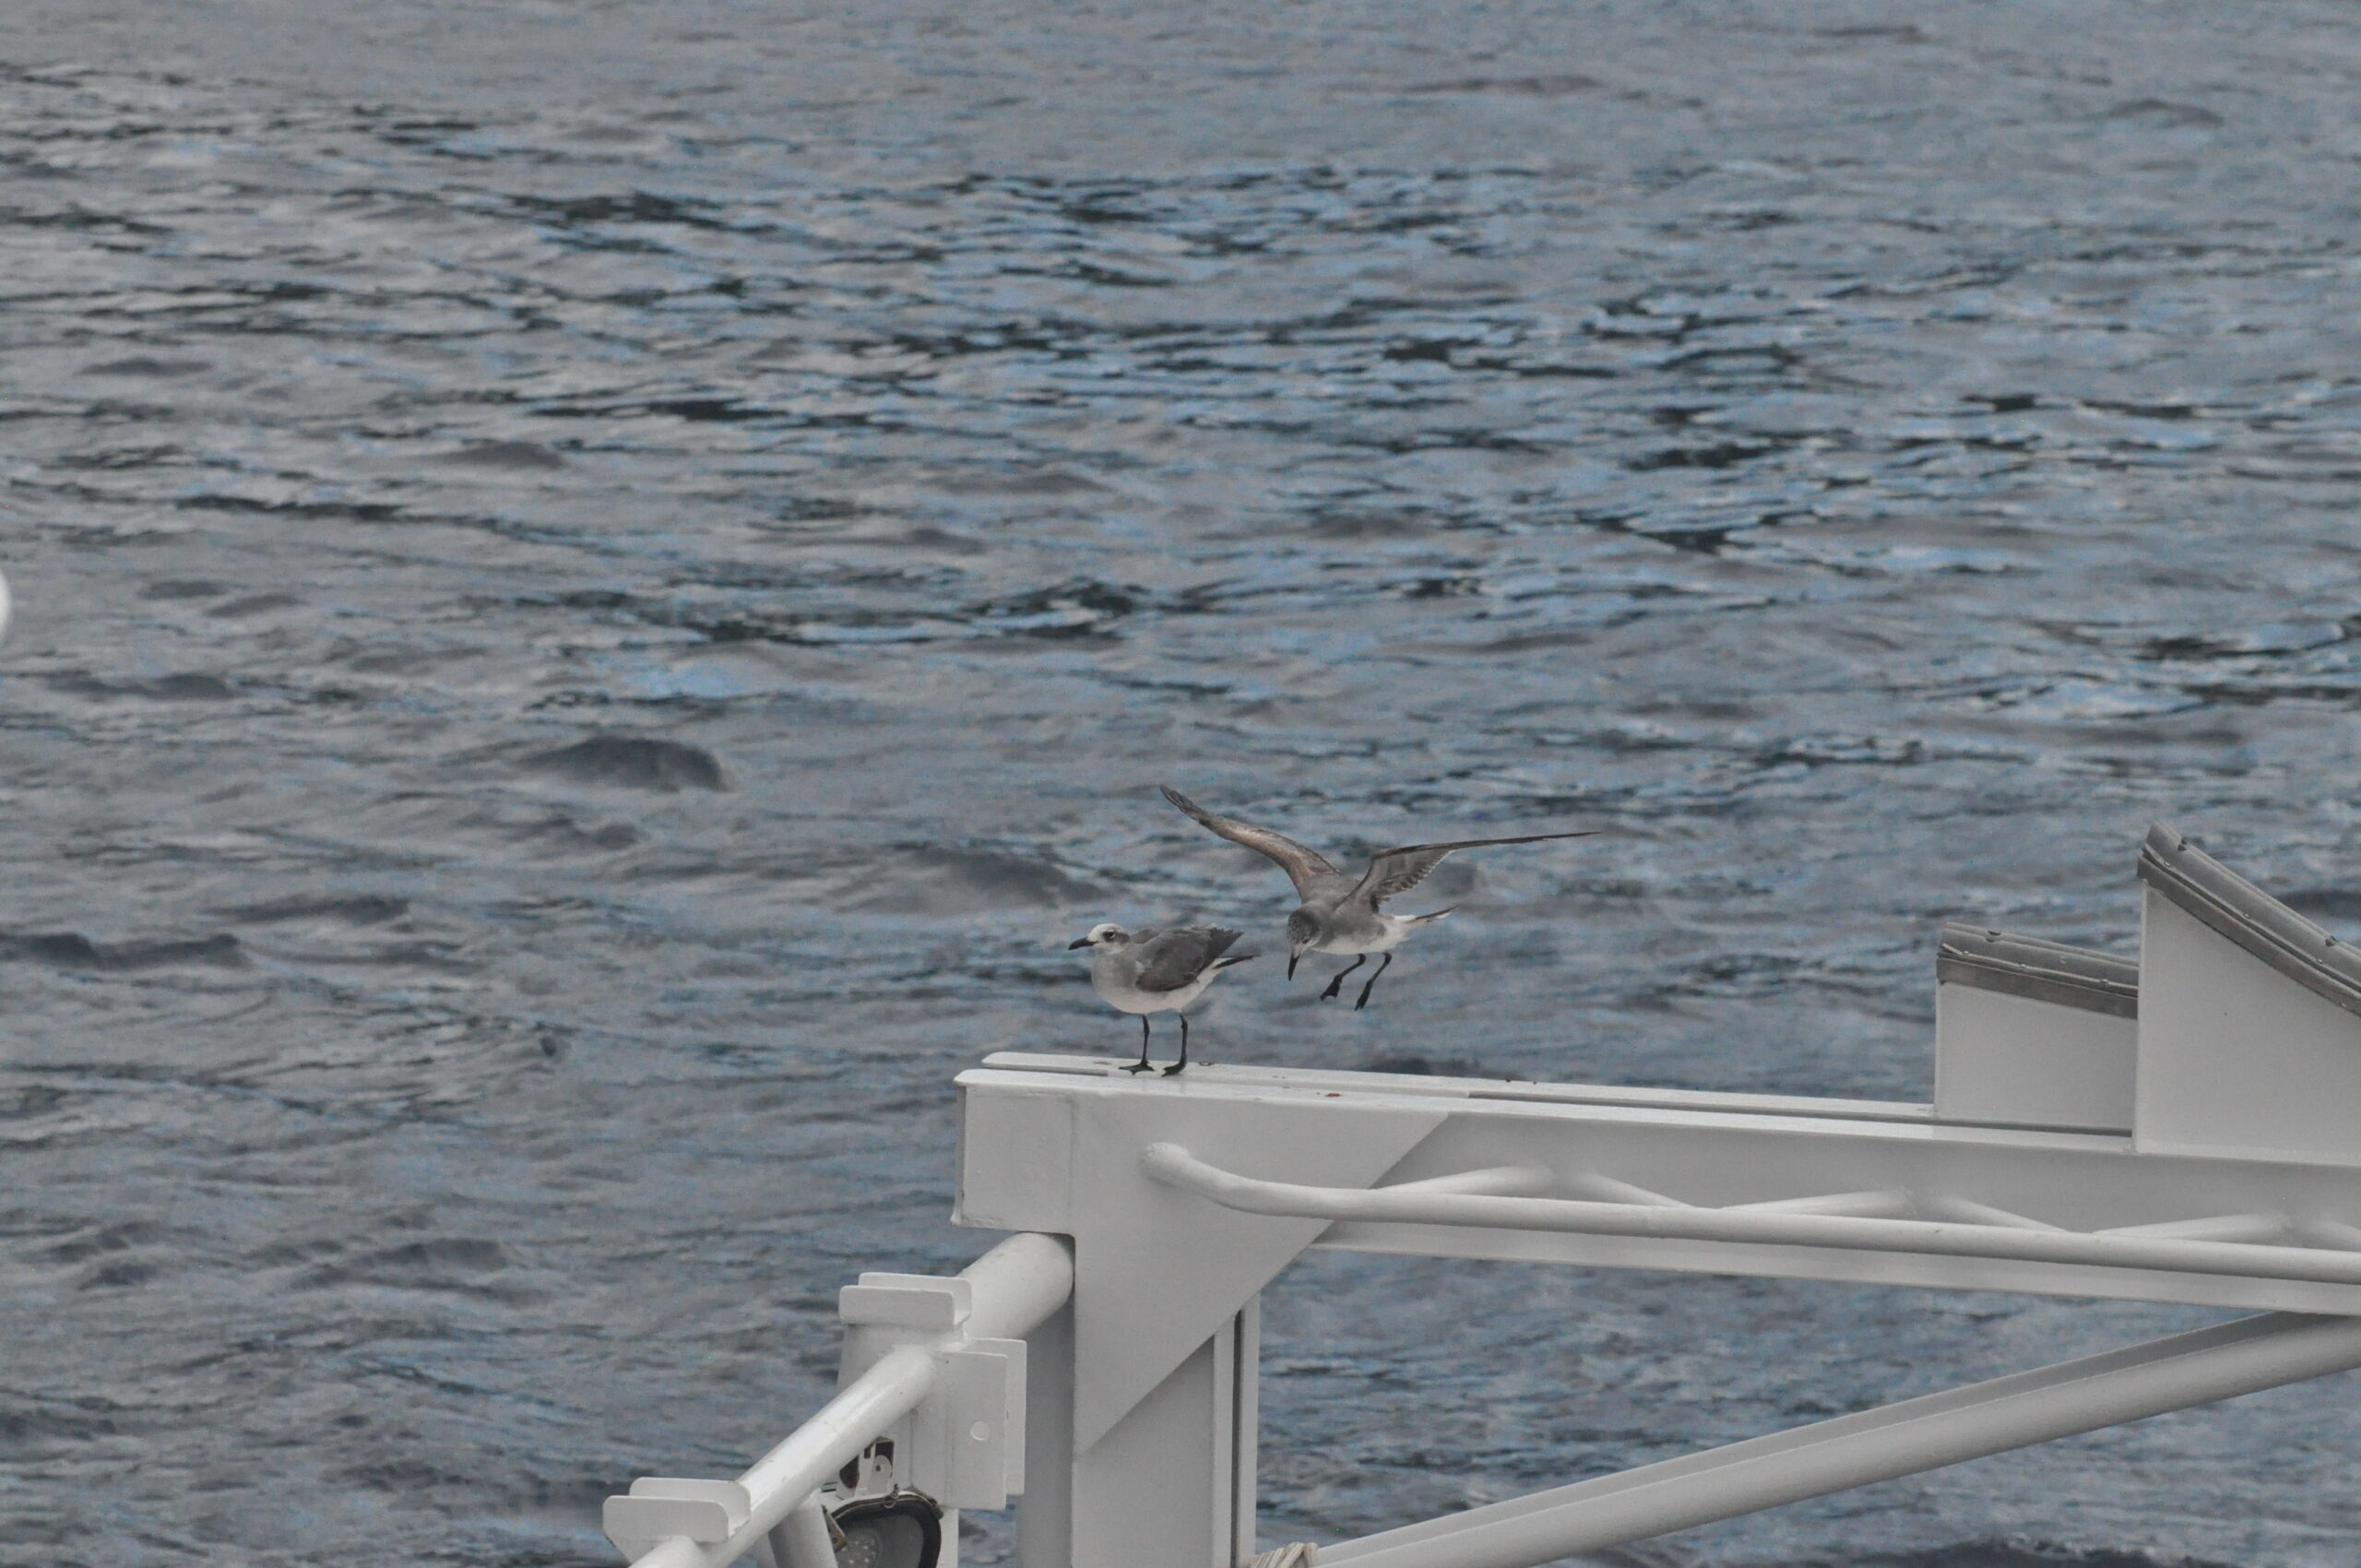 April 2019 Cocos Expedition: The Crossing